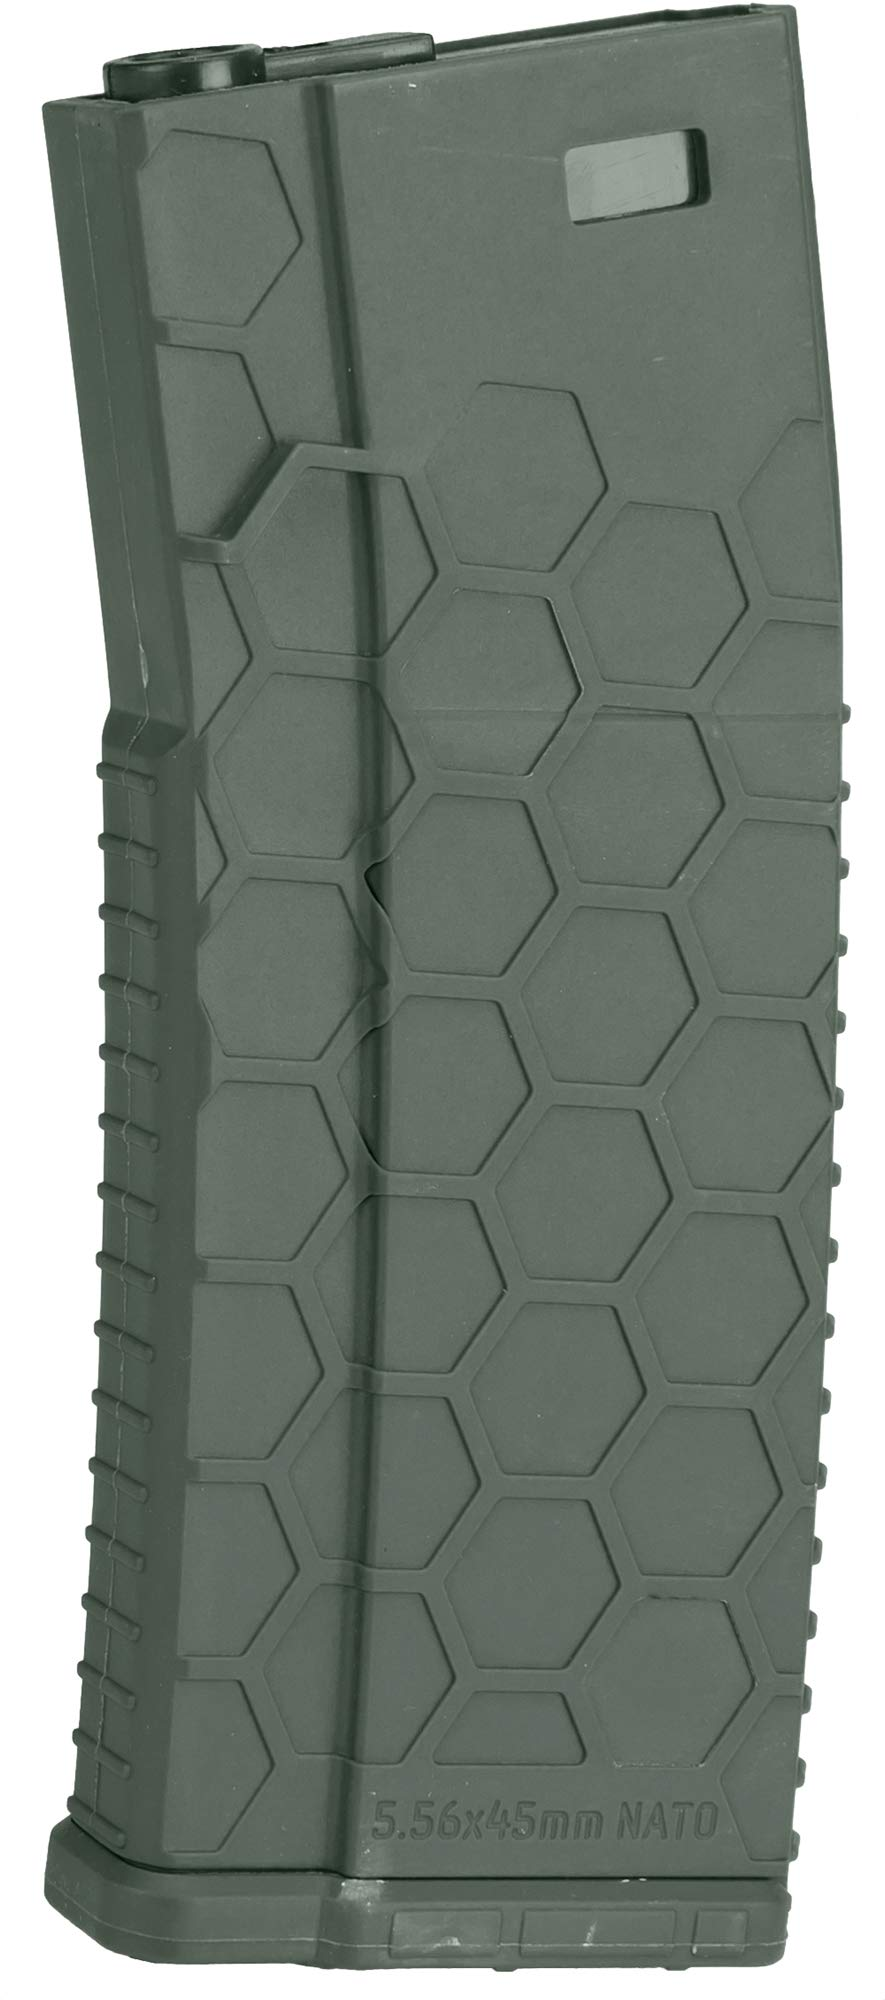 Evike Hexmag Airsoft 120rds Polymer Mid-Cap Magazine for M4 / M16 Series Airsoft AEG Rifles (Color: OD Green/Single) by Evike